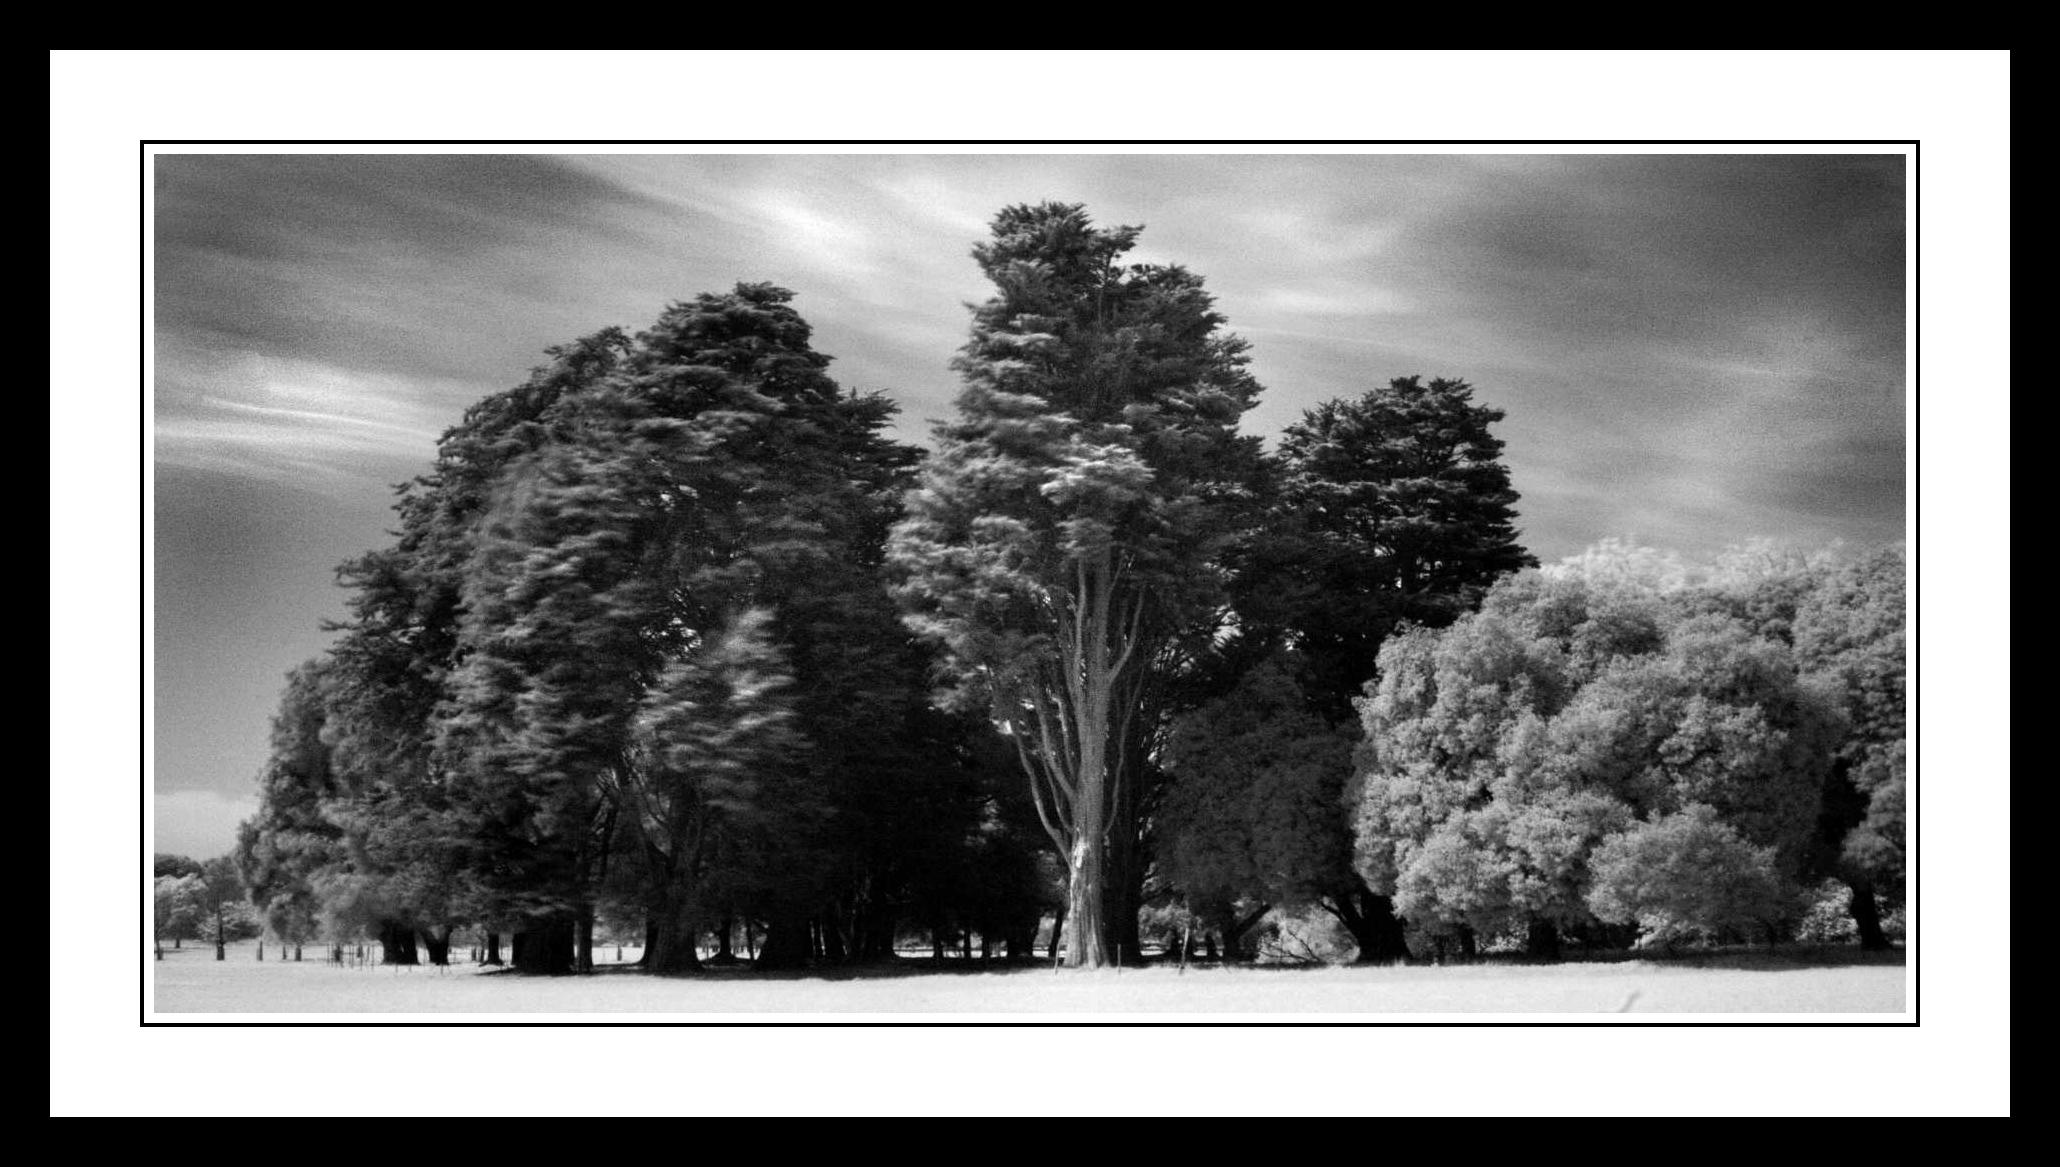 Group of trees in The Phoenix Park